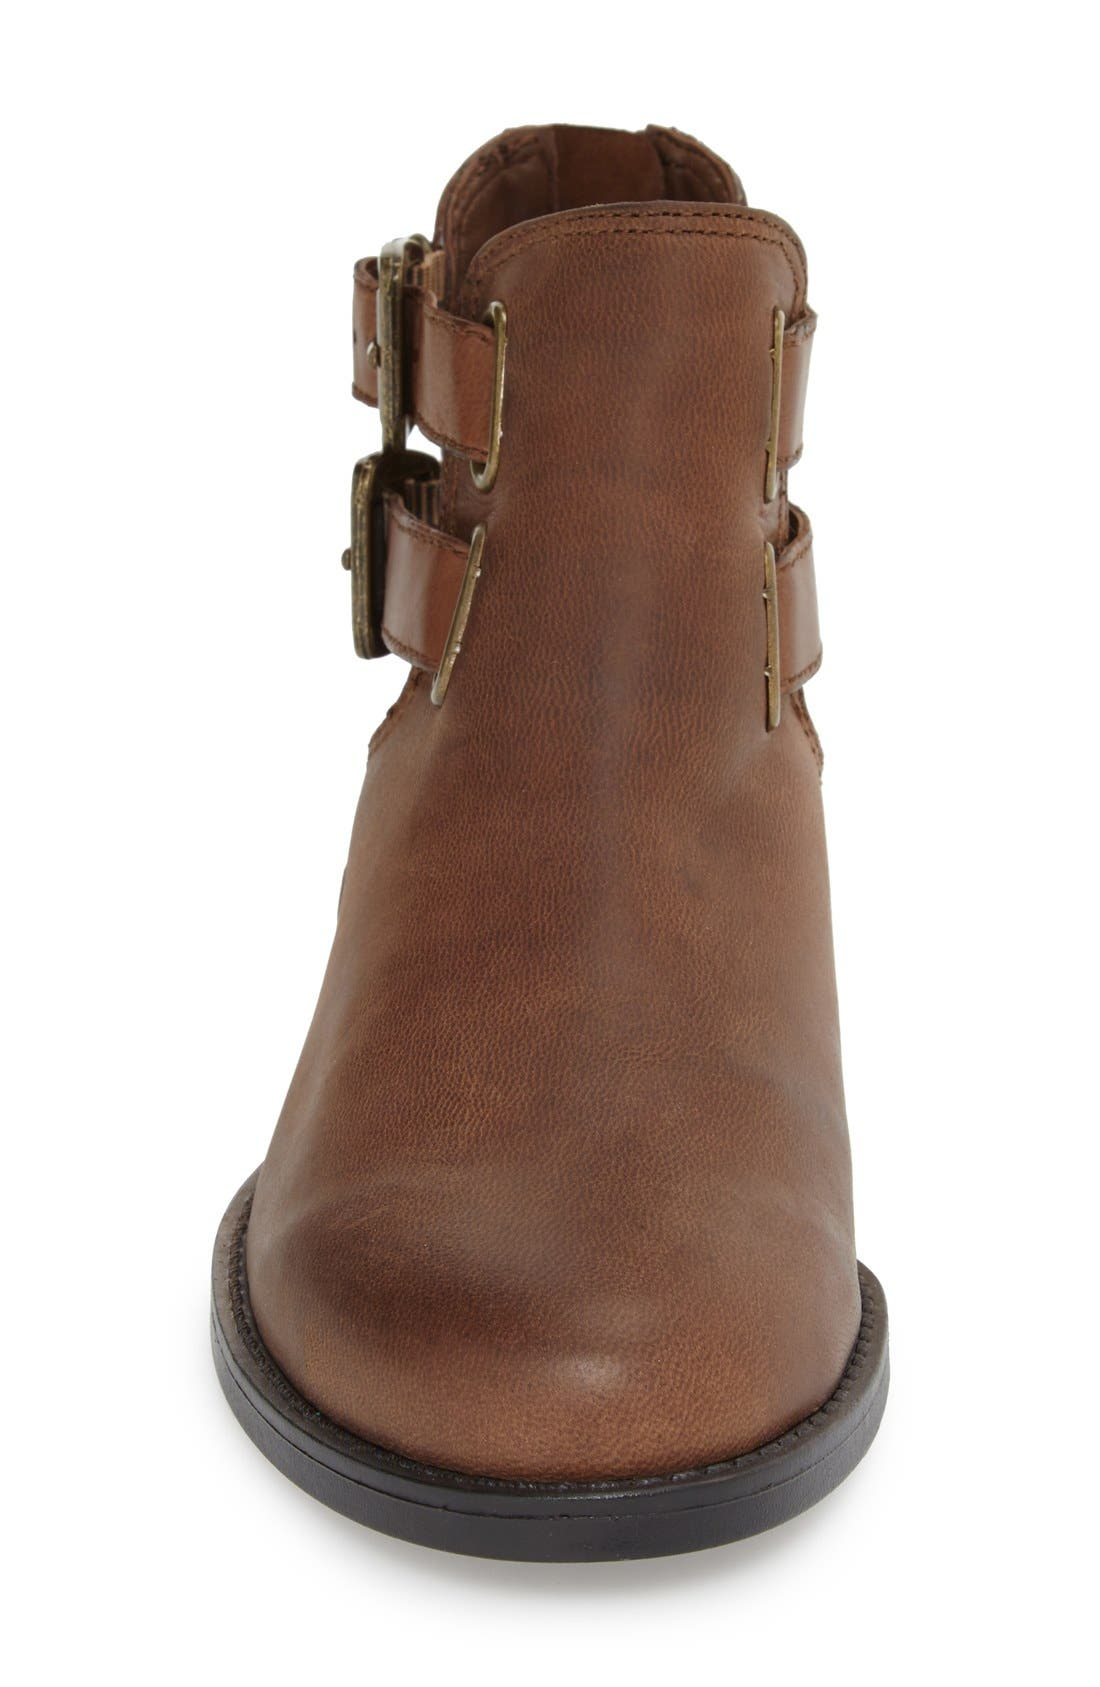 'Ramona' Double Buckle Bootie,                             Alternate thumbnail 3, color,                             Camel Leather